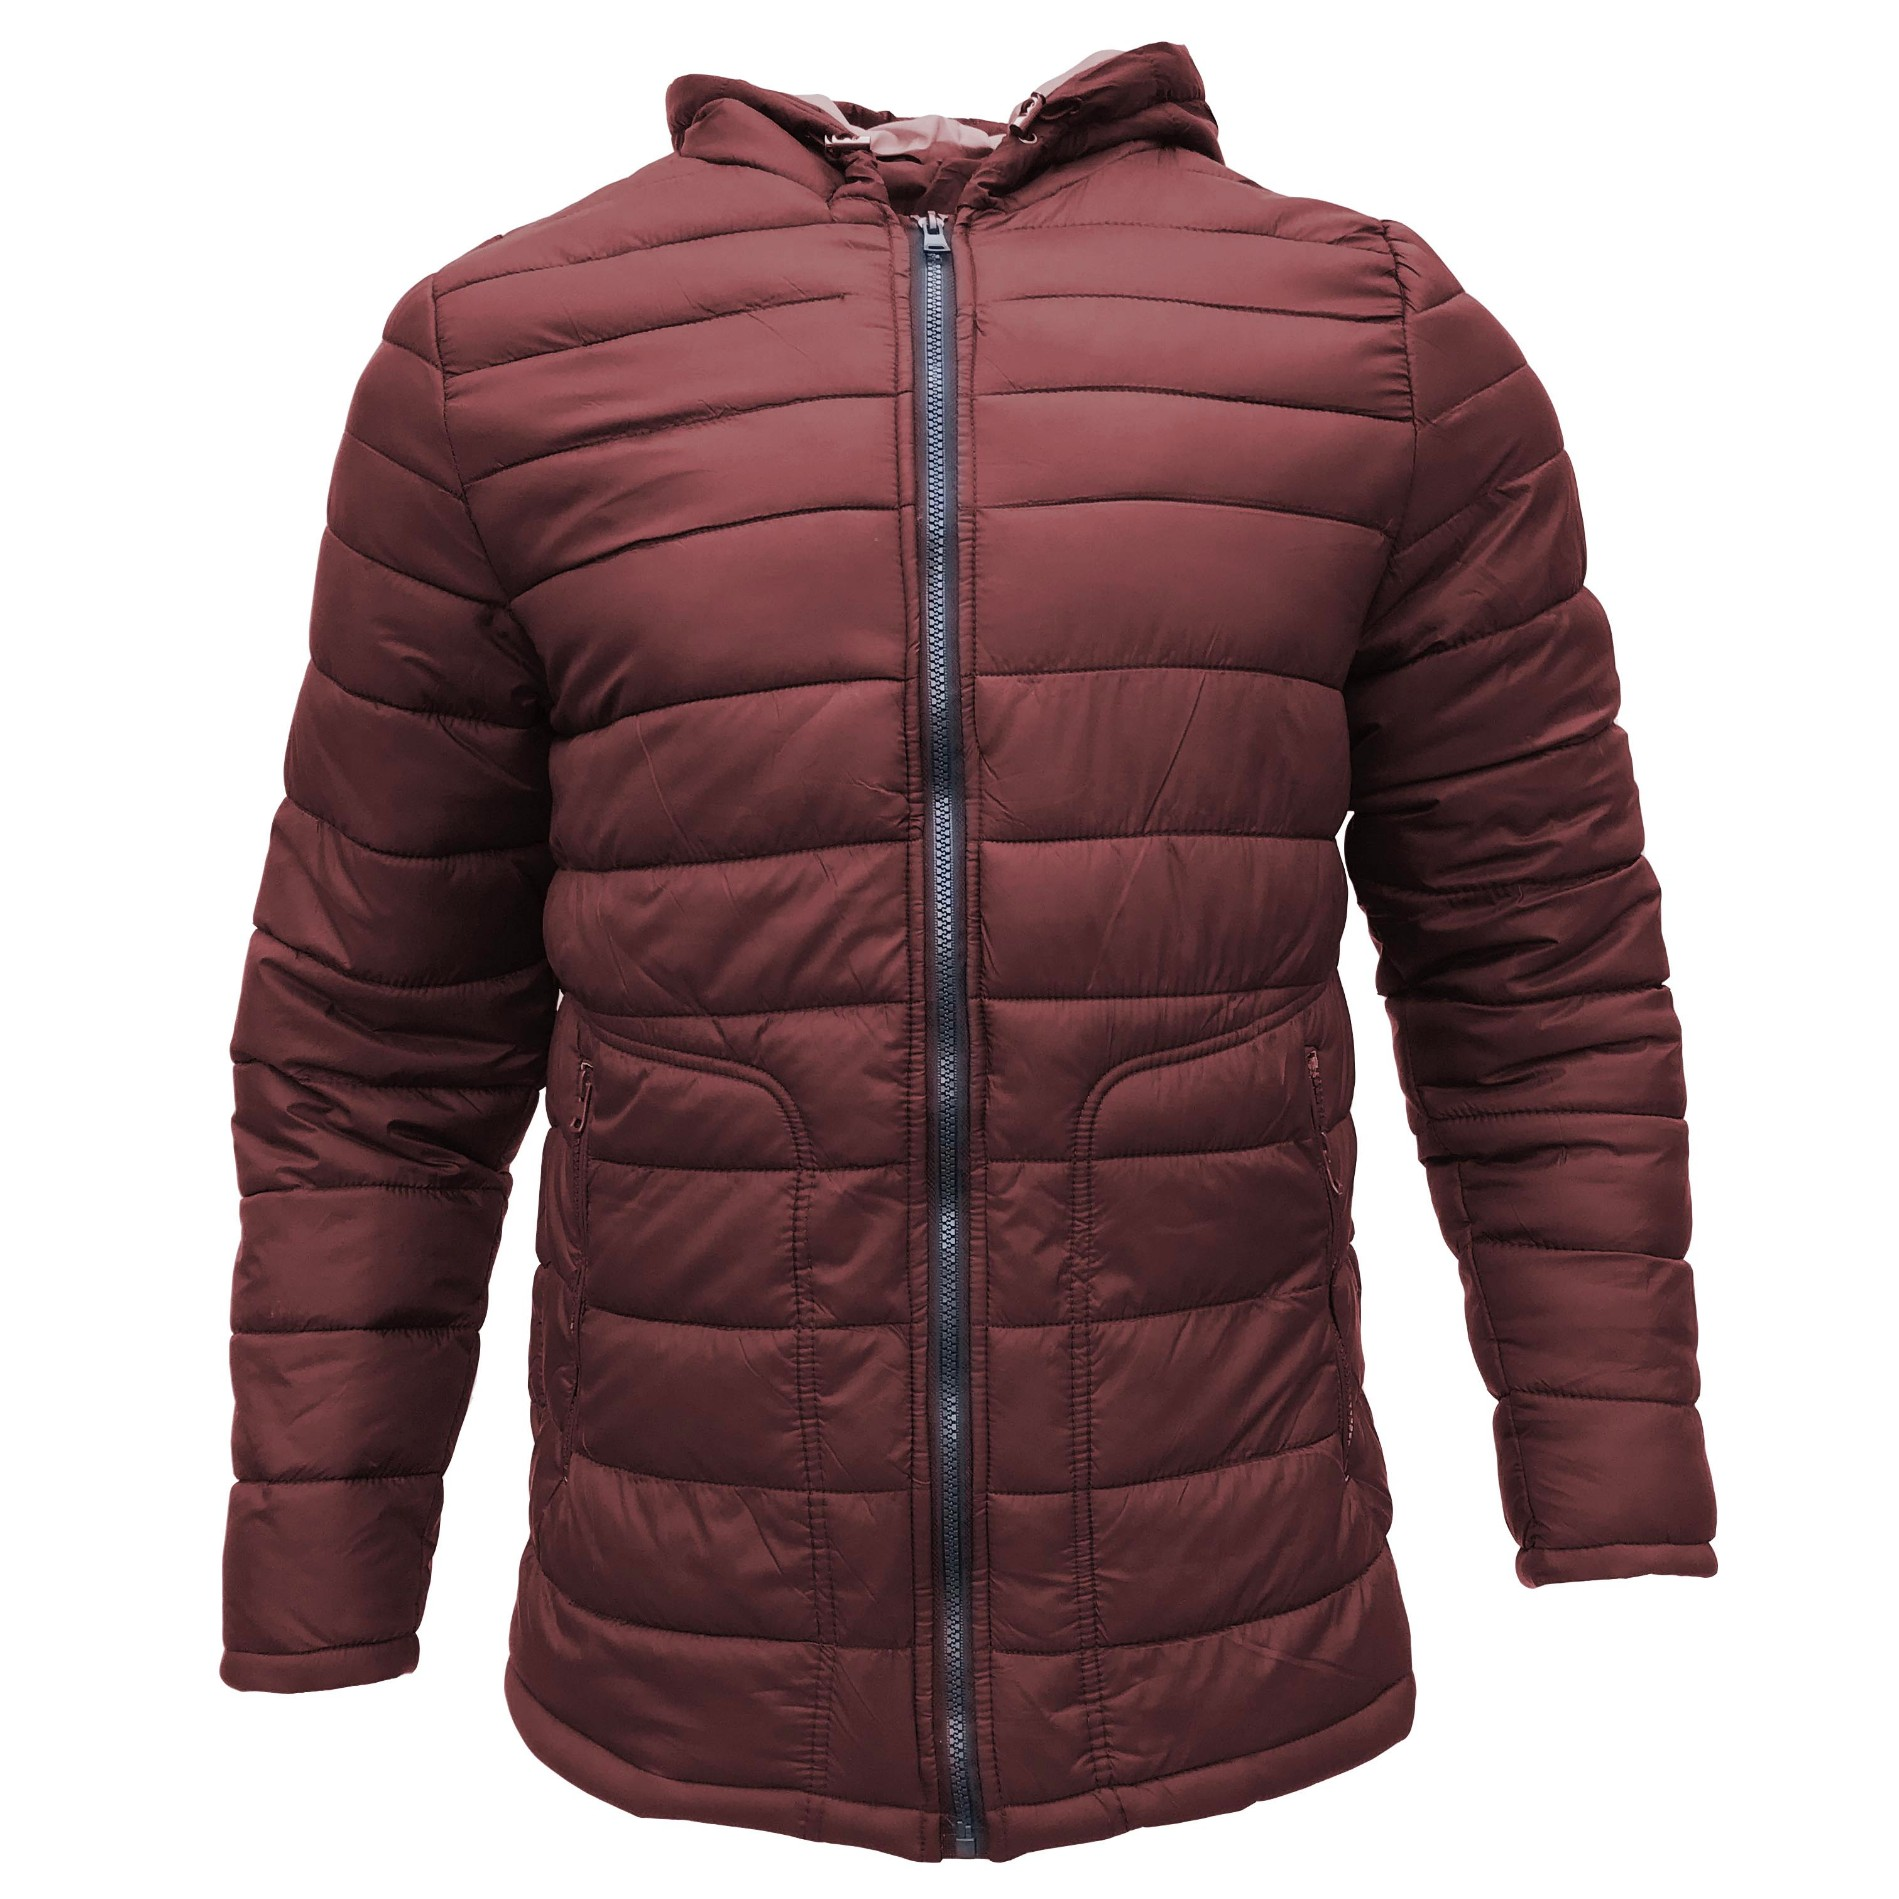 Men's Hooded Padding Jacket High Quality Padded Jackets Winter Jackets For Men Manufacturers, Men's Hooded Padding Jacket High Quality Padded Jackets Winter Jackets For Men Factory, Supply Men's Hooded Padding Jacket High Quality Padded Jackets Winter Jackets For Men